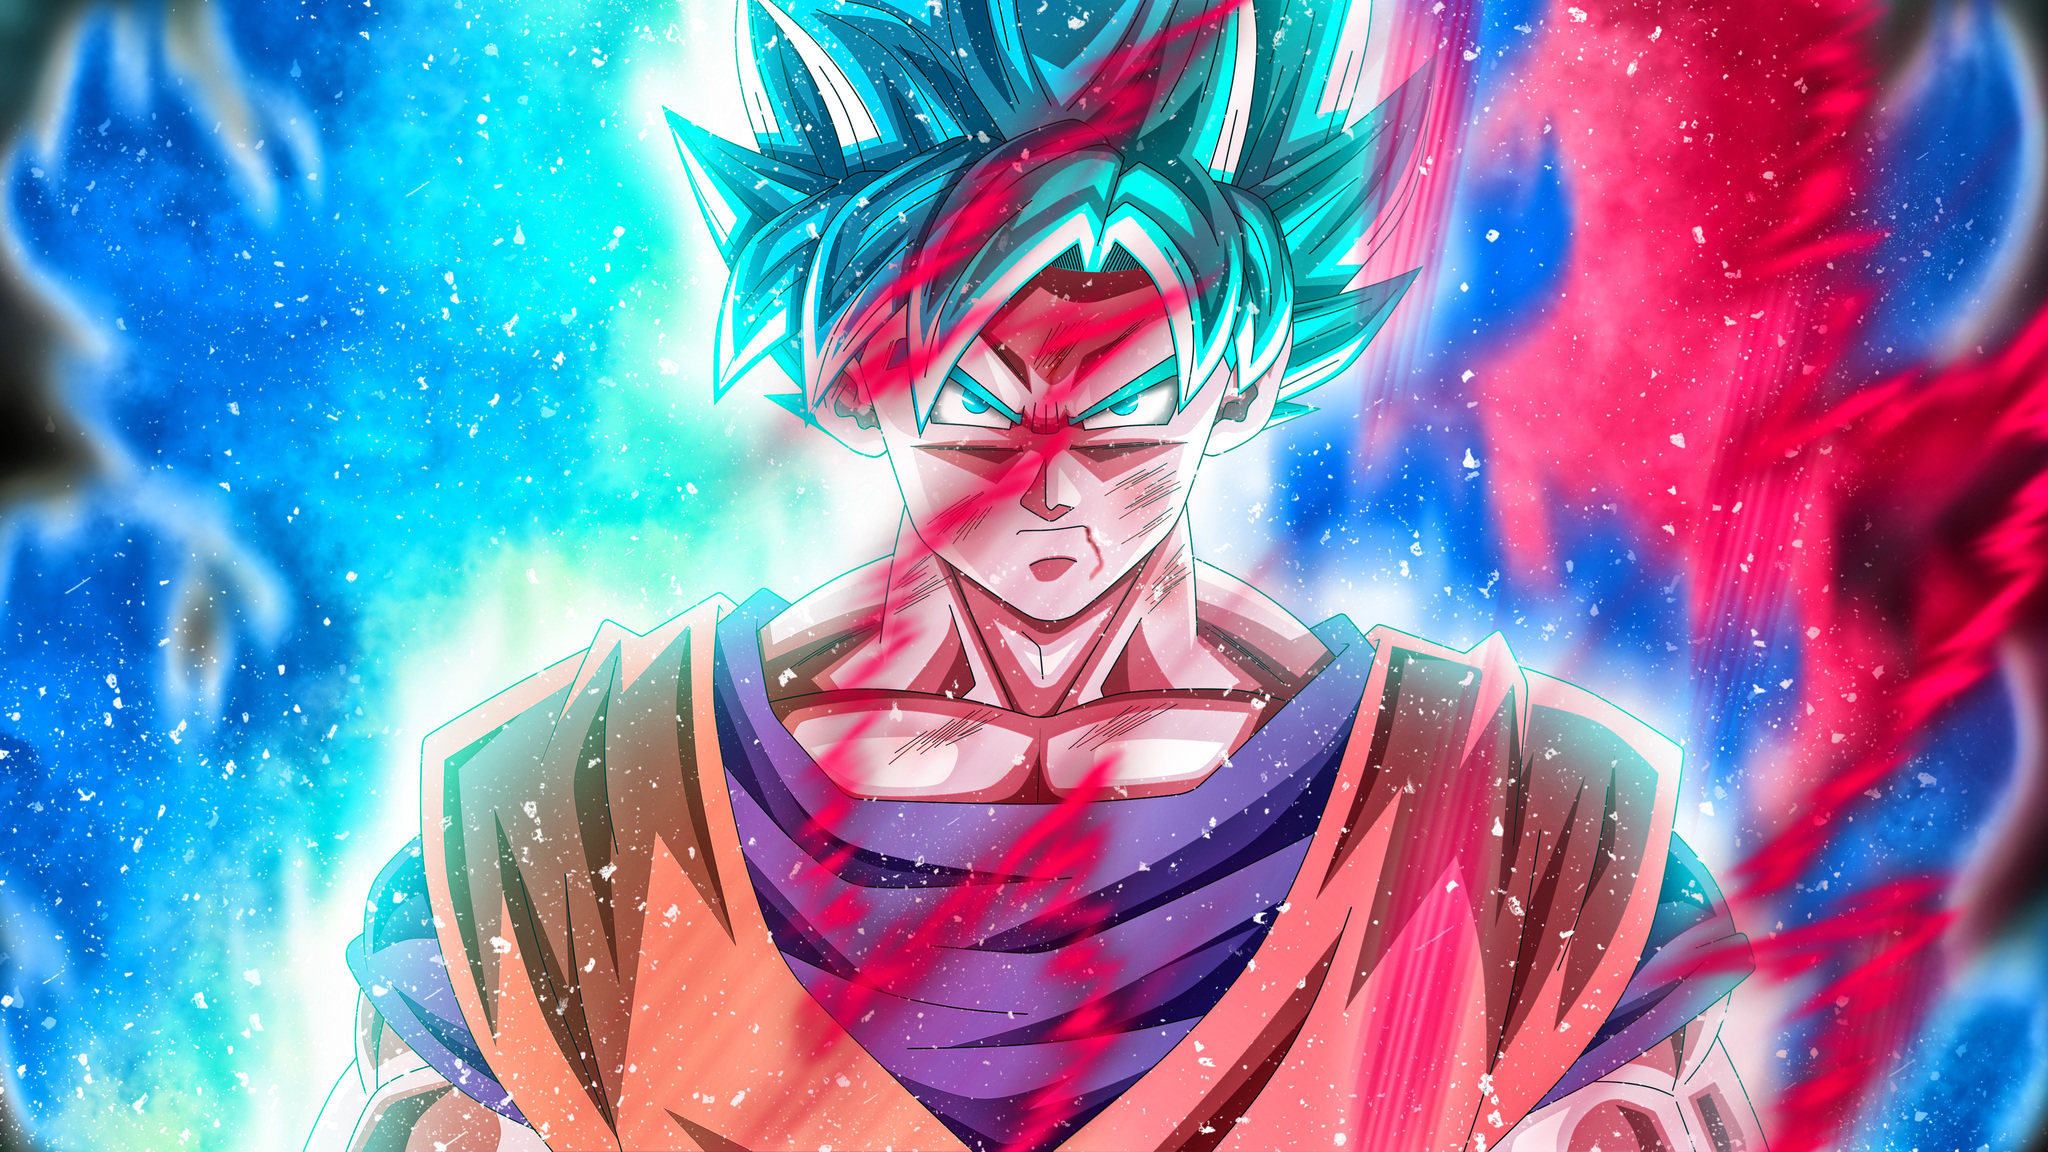 2048x1152 Dragon Ball Super 2048x1152 Resolution Hd 4k